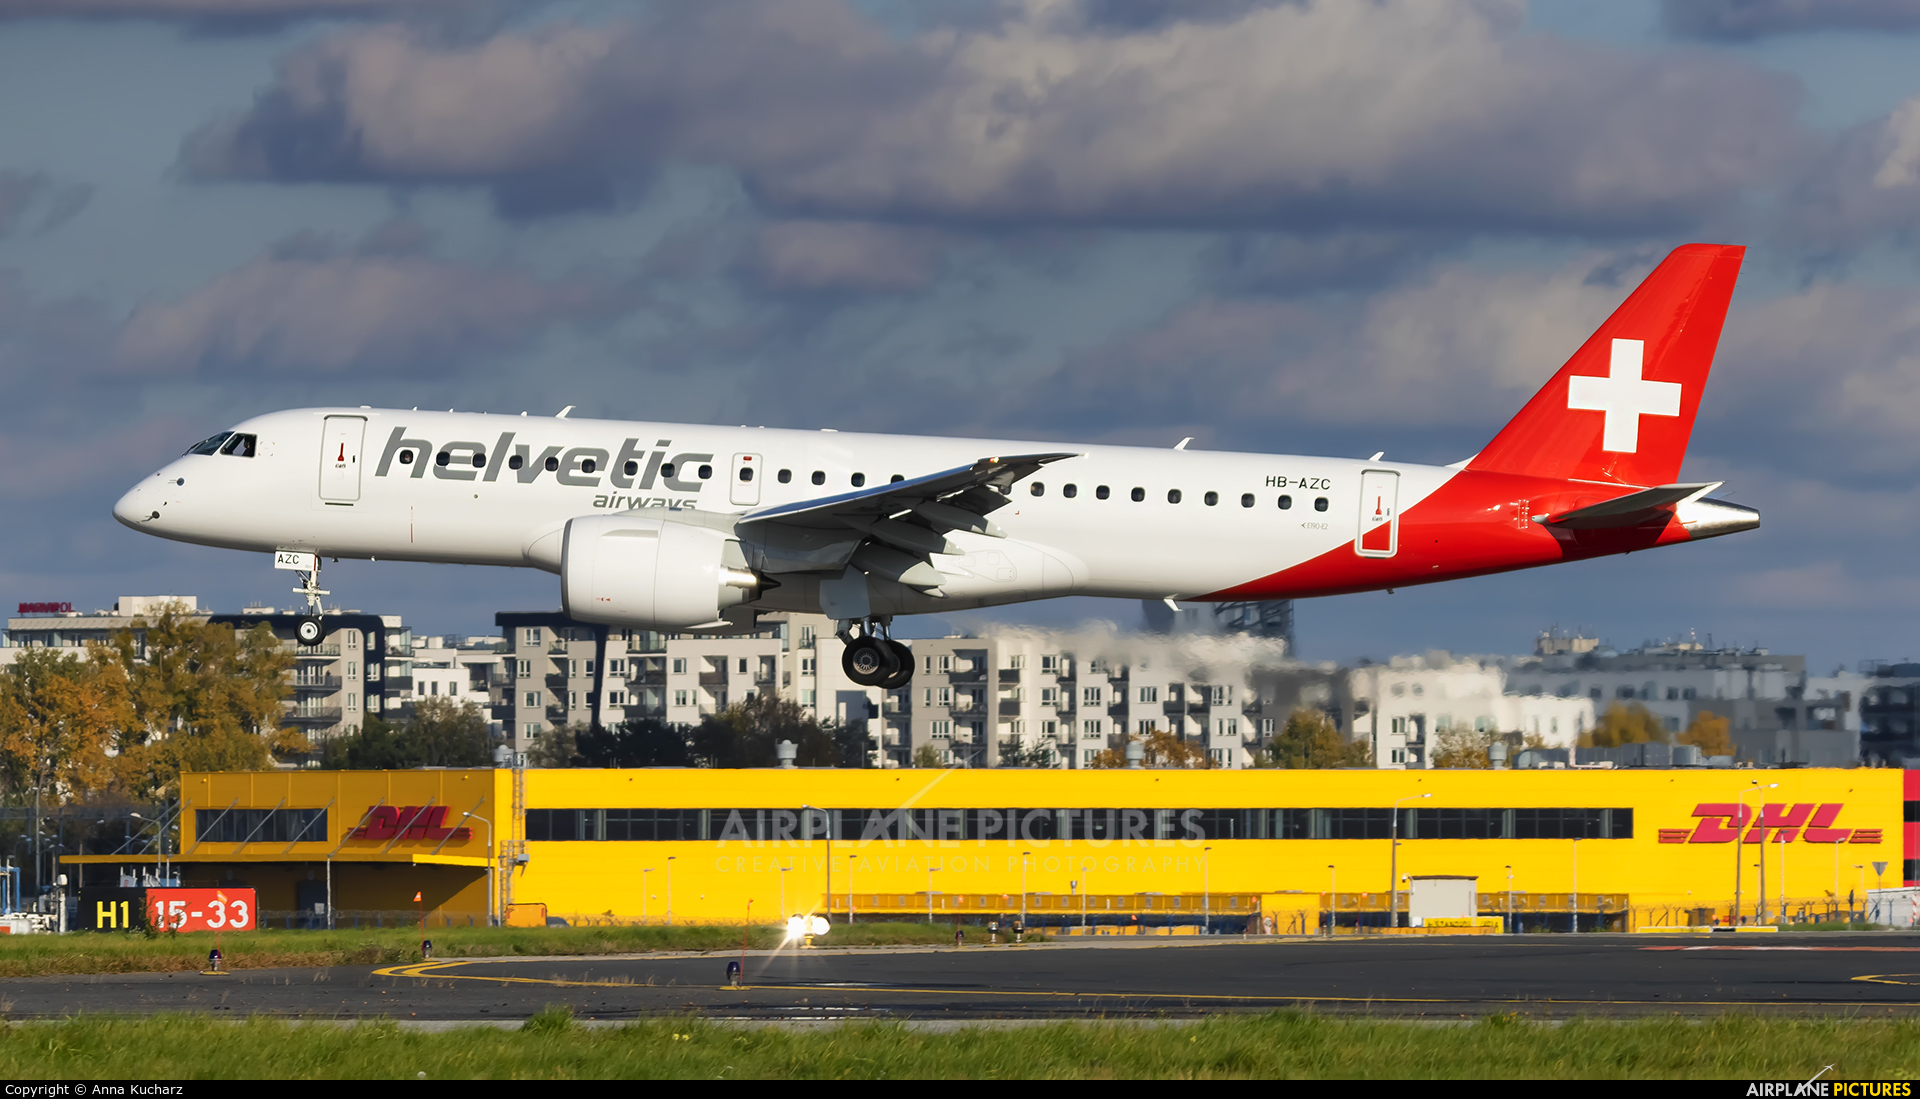 Helvetic Airways HB-AZC aircraft at Warsaw - Frederic Chopin